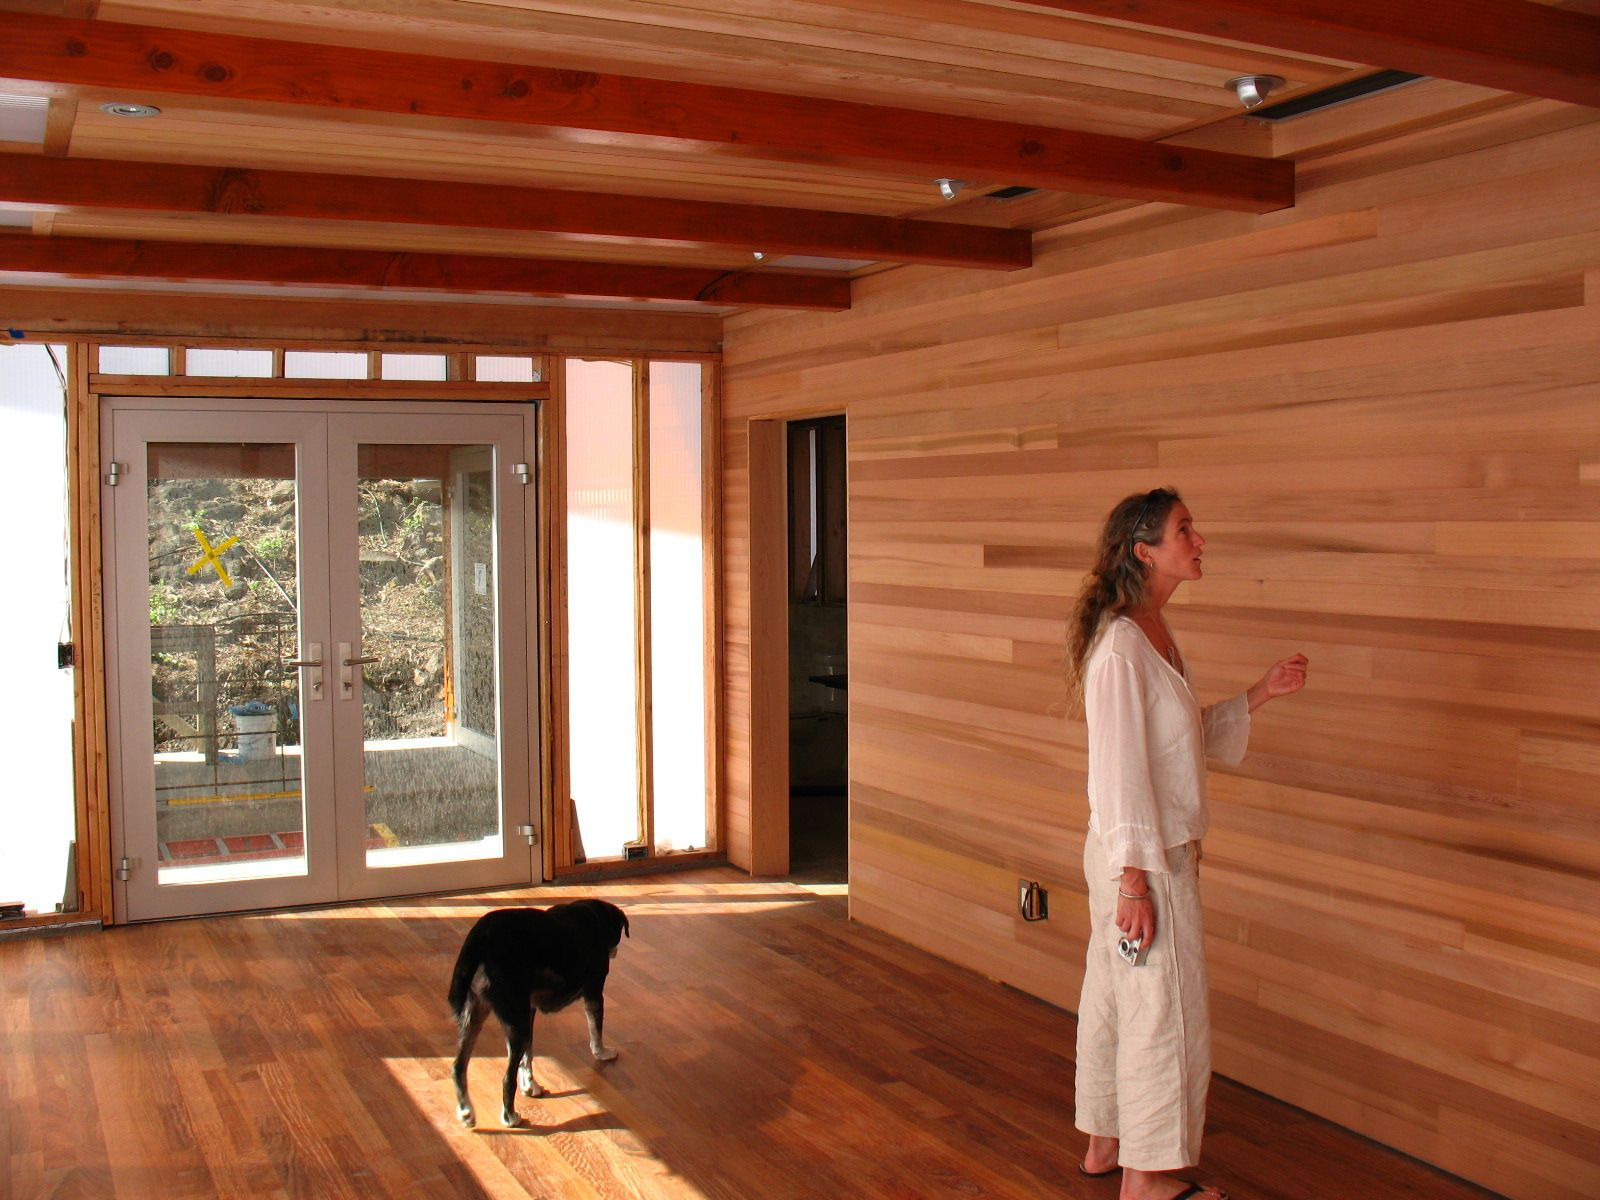 Good Bedroom Is Lined With Shiplap Cedar Siding And Tongue And Groove Cedar .